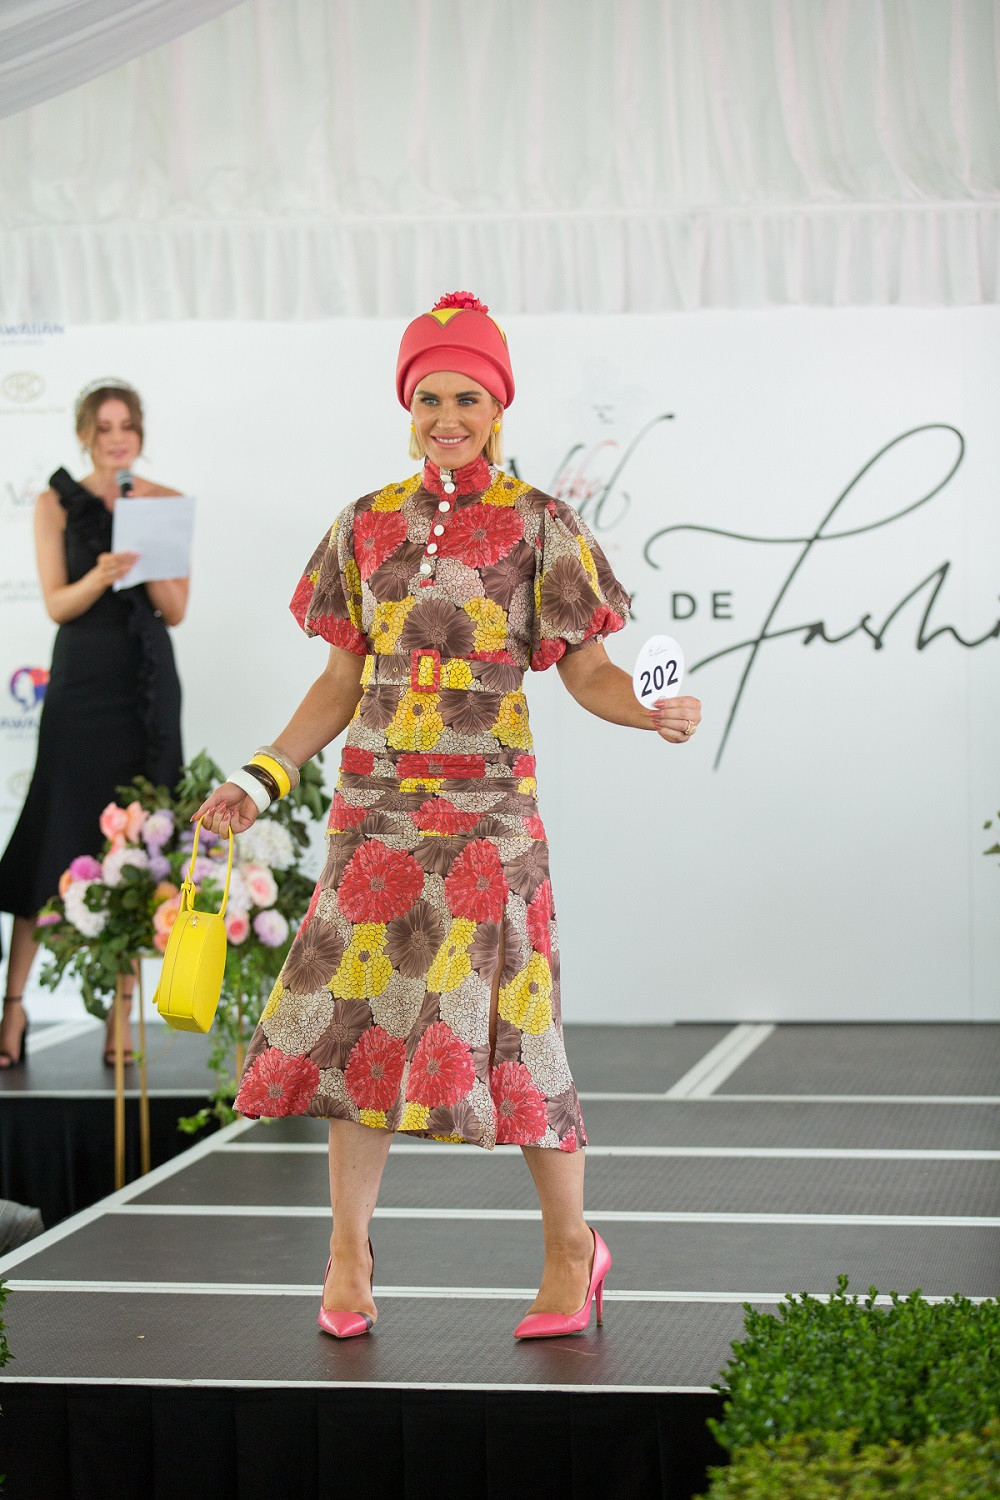 Katie O'Neill winning The Ned Prix de Fashion at Ellerslie in February 2020